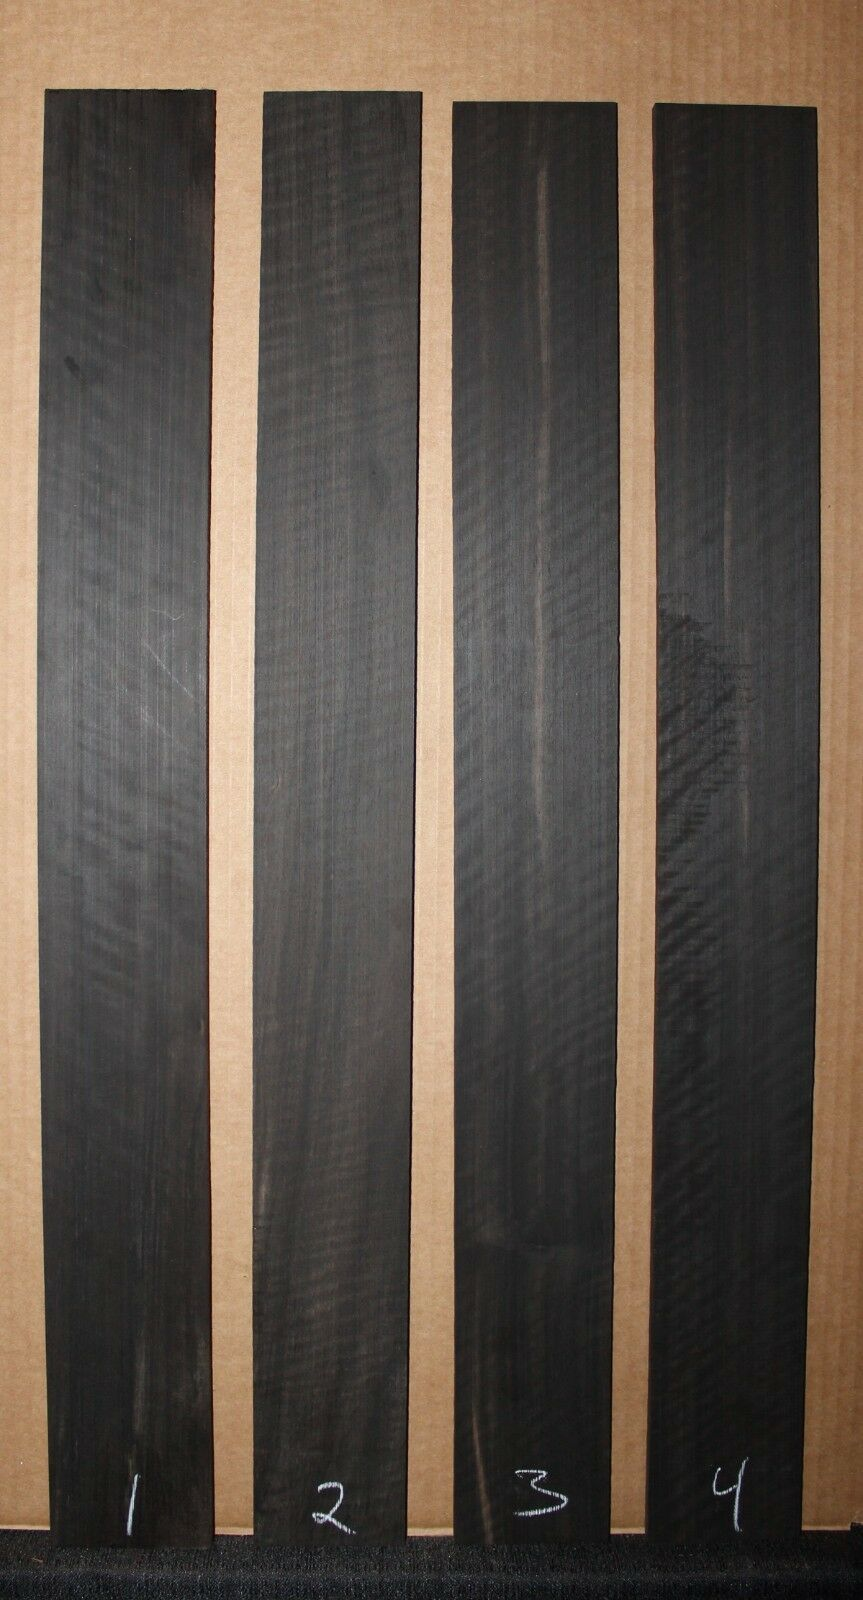 Ebony, Gabon, curly w/ a bit of color, bass fingerboard blank. Sold individually